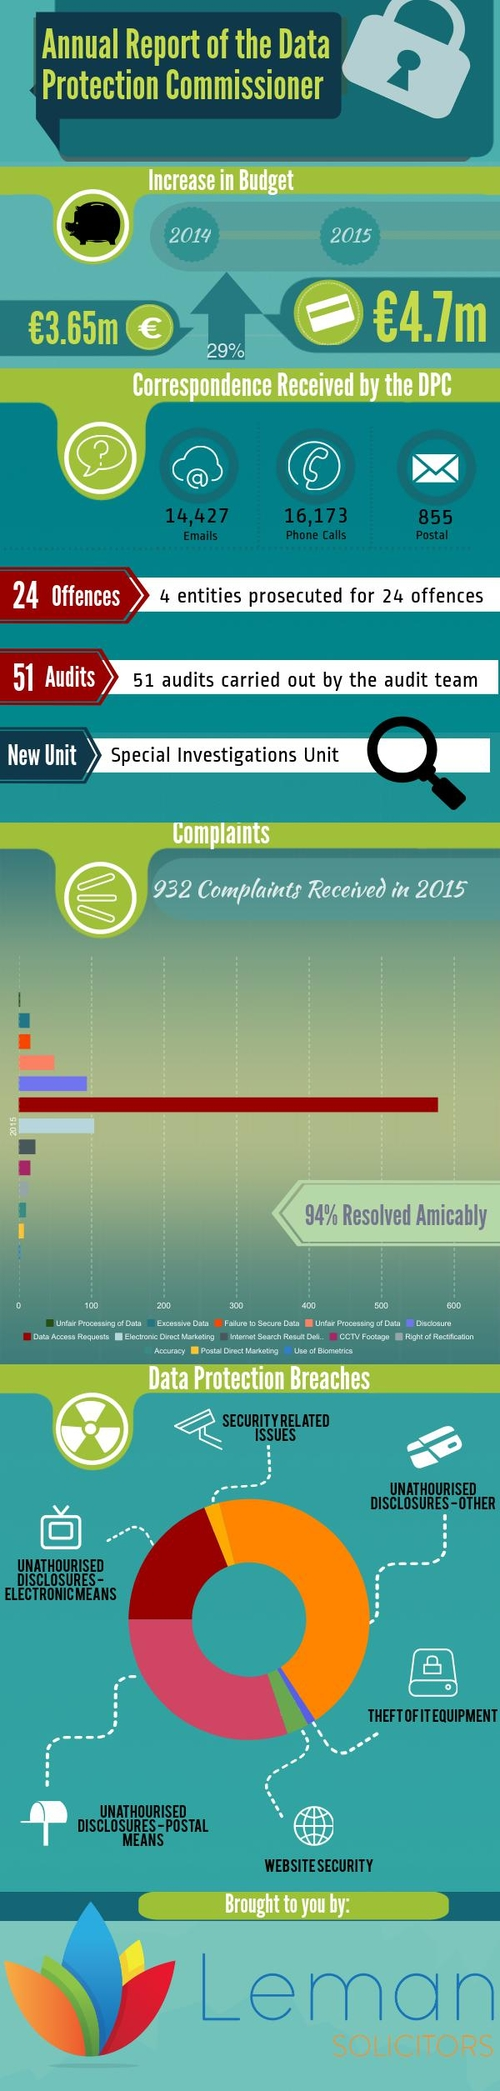 Annual Report of the Data Protection Commissioner